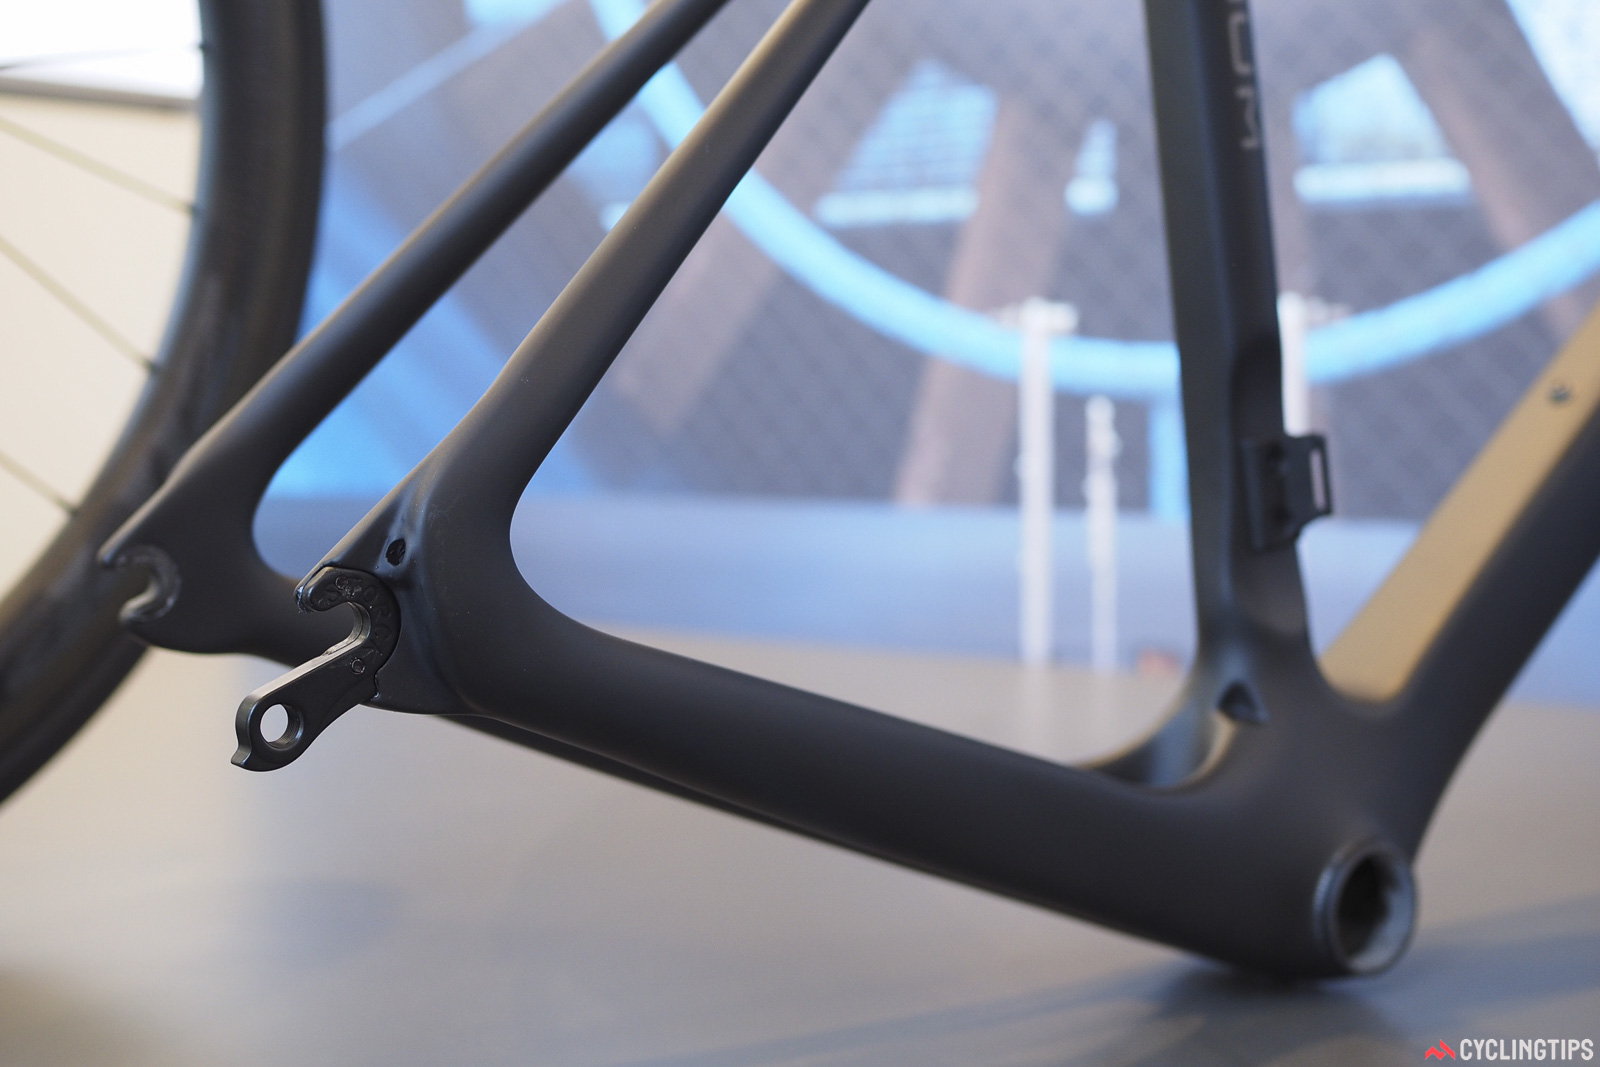 The huge chainstays on the new Storck Fascenario.3 loop cleanly around at the dropouts into the seatstays. The rear-entry dropouts are typical for Storck road frames. Photo: James Huang.